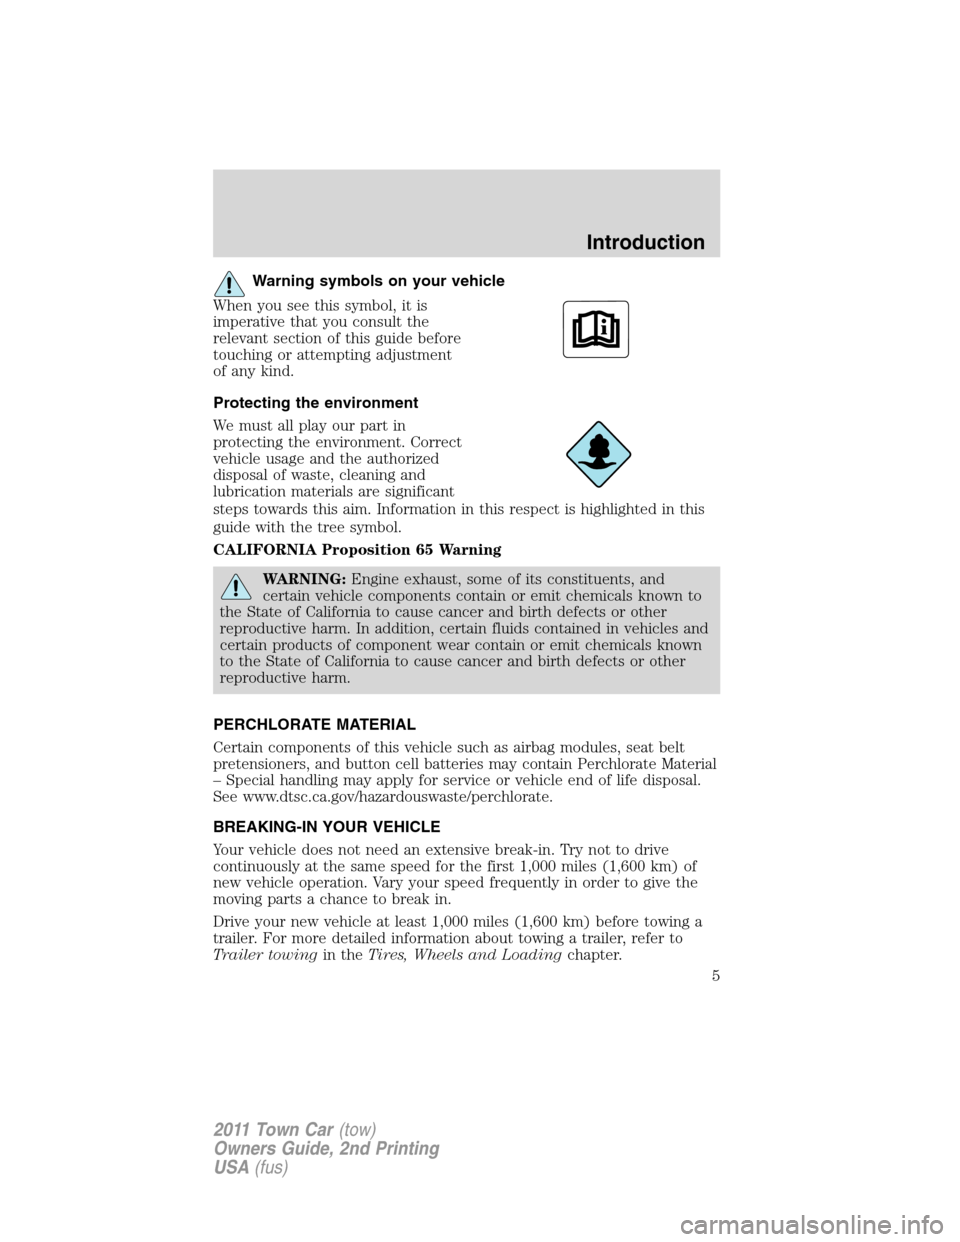 LINCOLN TOWN CAR 2011  Owners Manual, Page 5